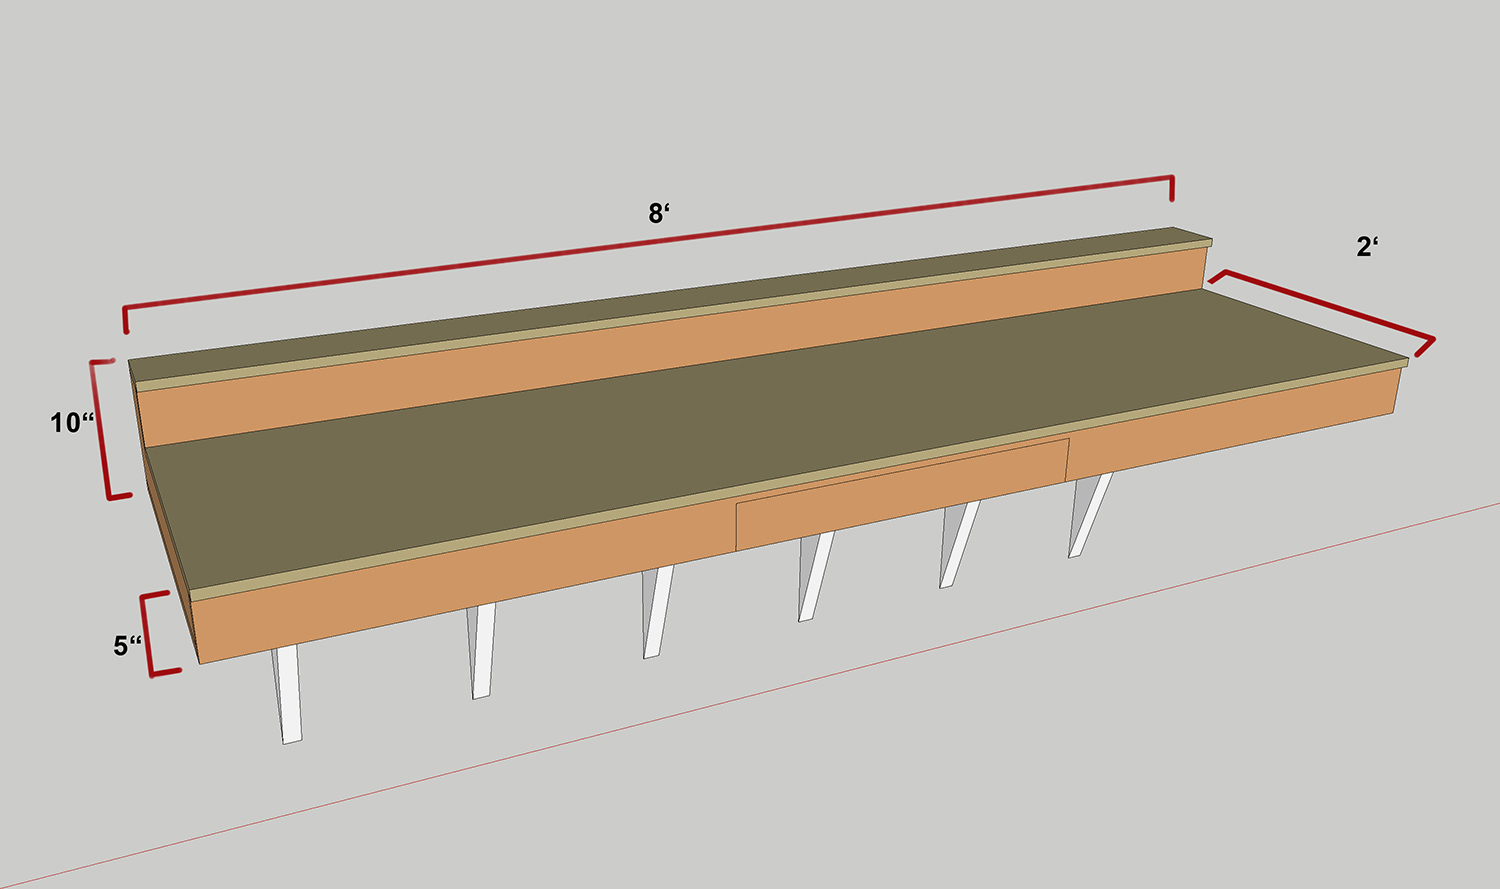 The Desk Will Be Built With 3 4 And 1 2 Birch Plywood 2x4 S Heavy Duty Wall Brackets Here Is A Rough Idea Of Design